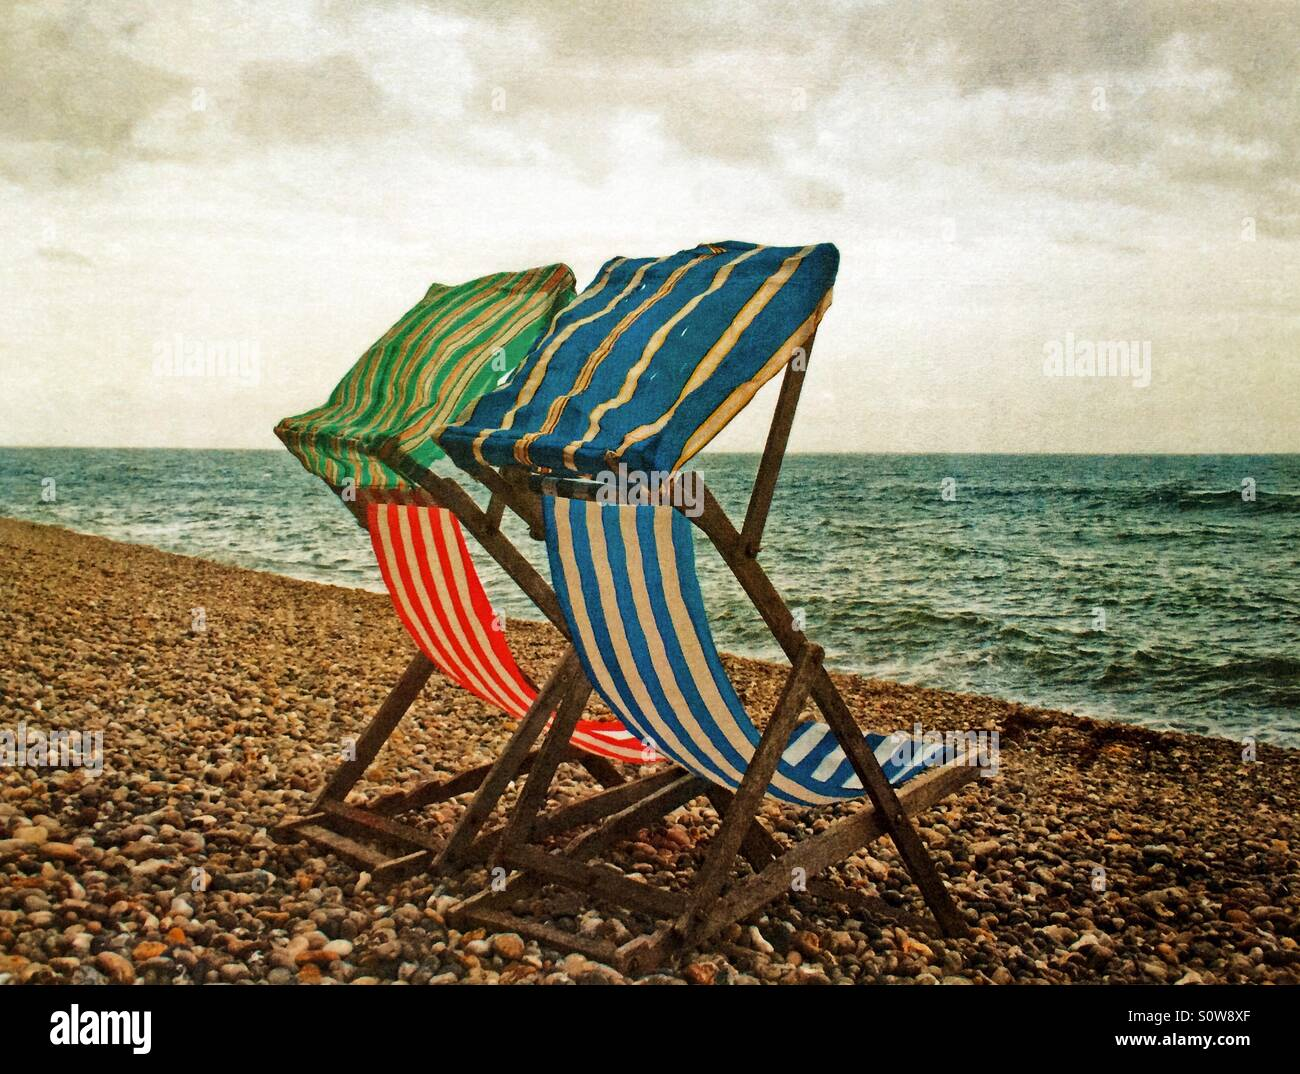 Old worn deckchairs winters day UK - Stock Image